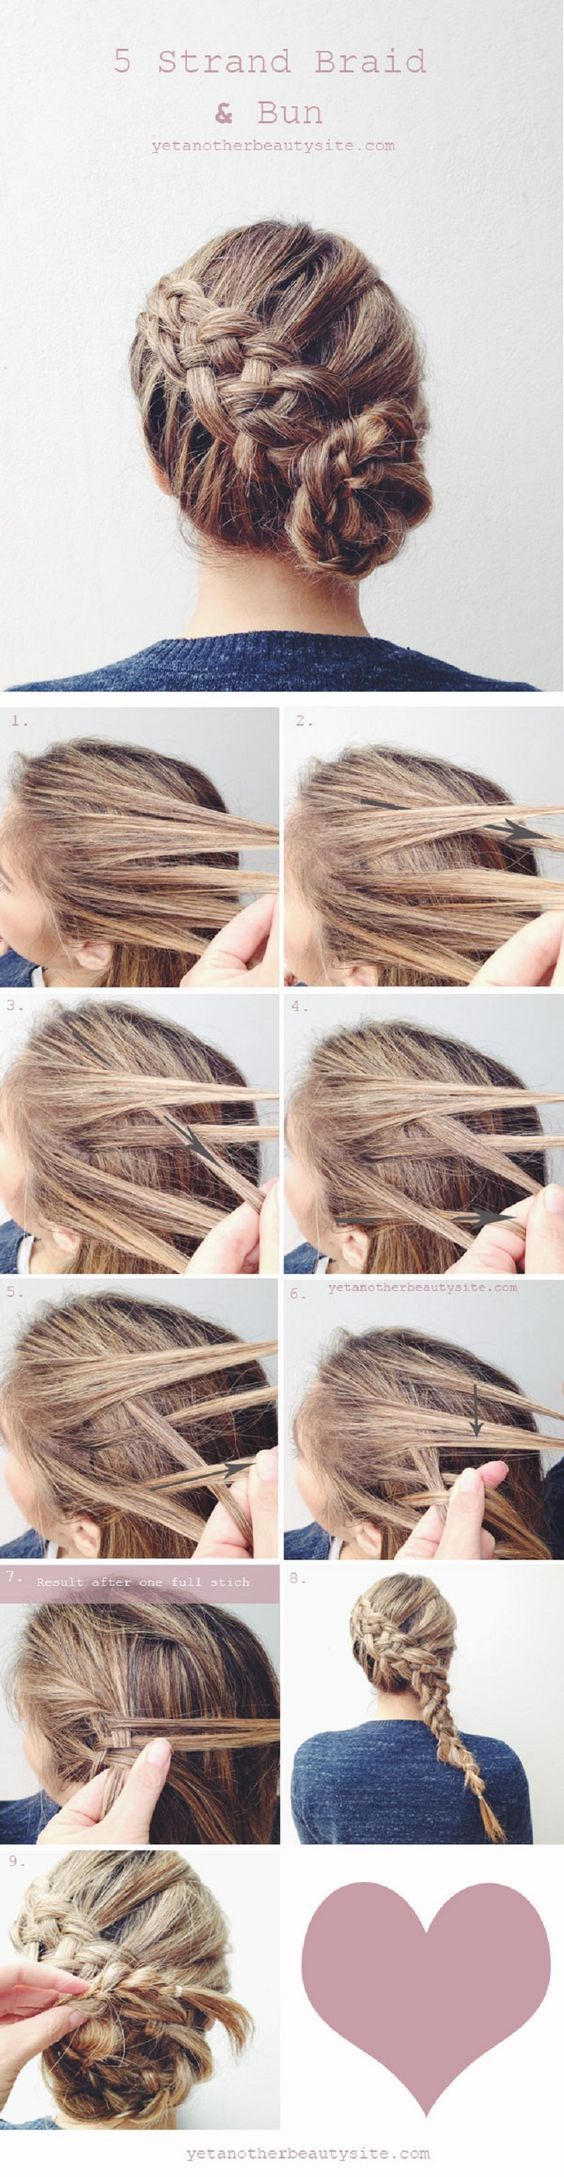 5 Strand Braided Hair via                                                       … Nail Design, Nail Art, Nail Salon, Irvine, Newport Beach